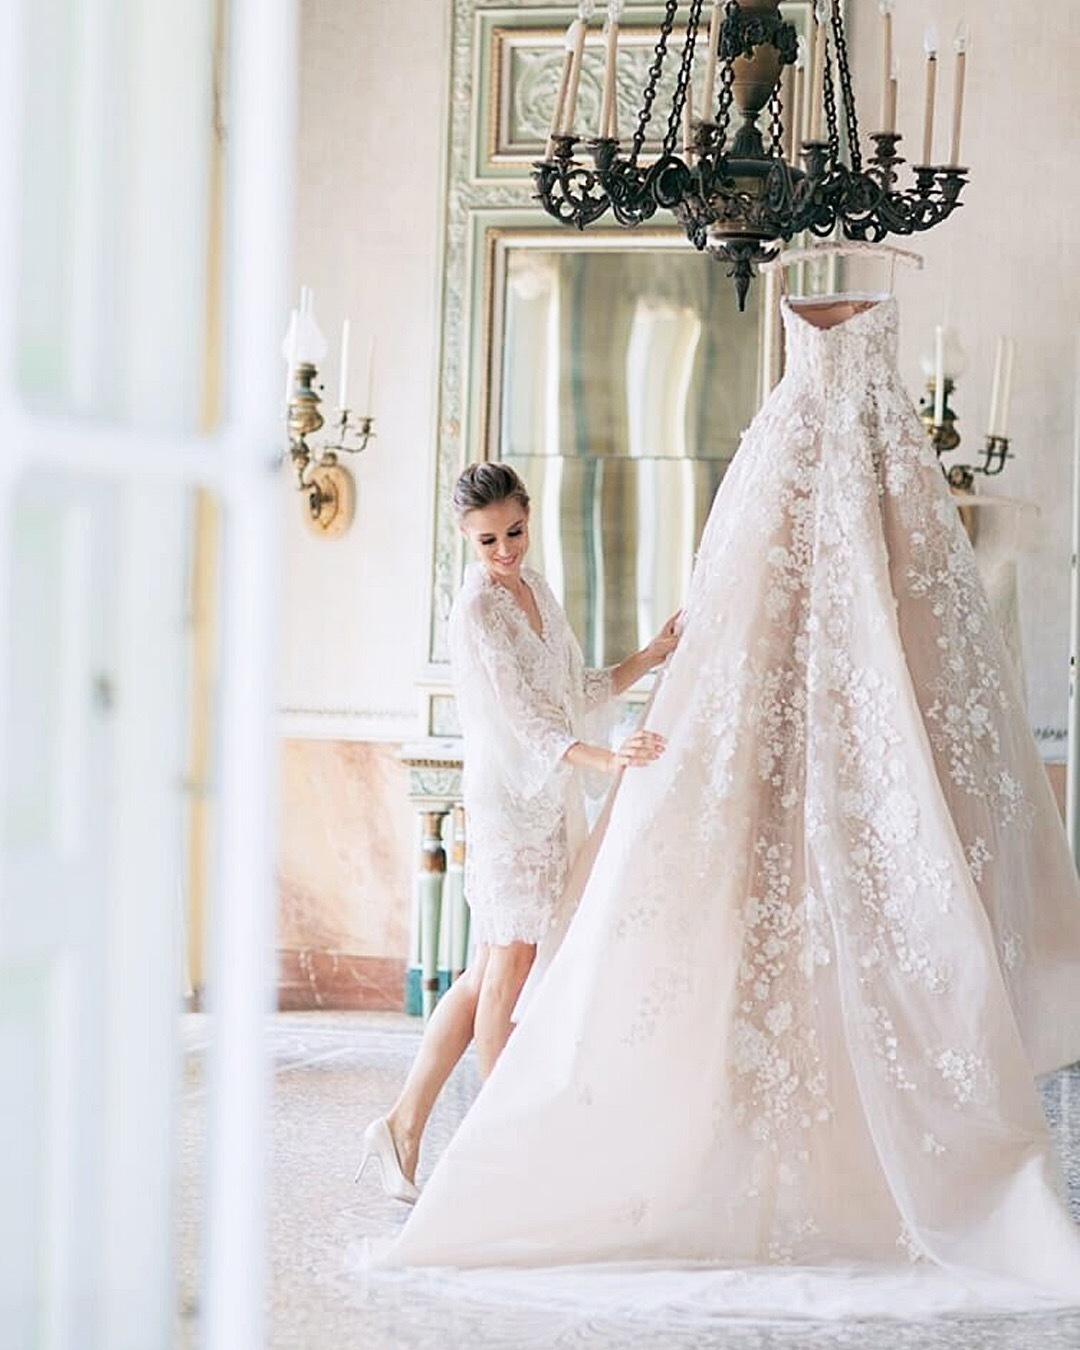 Wedding Dress : Wow! Amazing Idea For Your Inspo Tag A